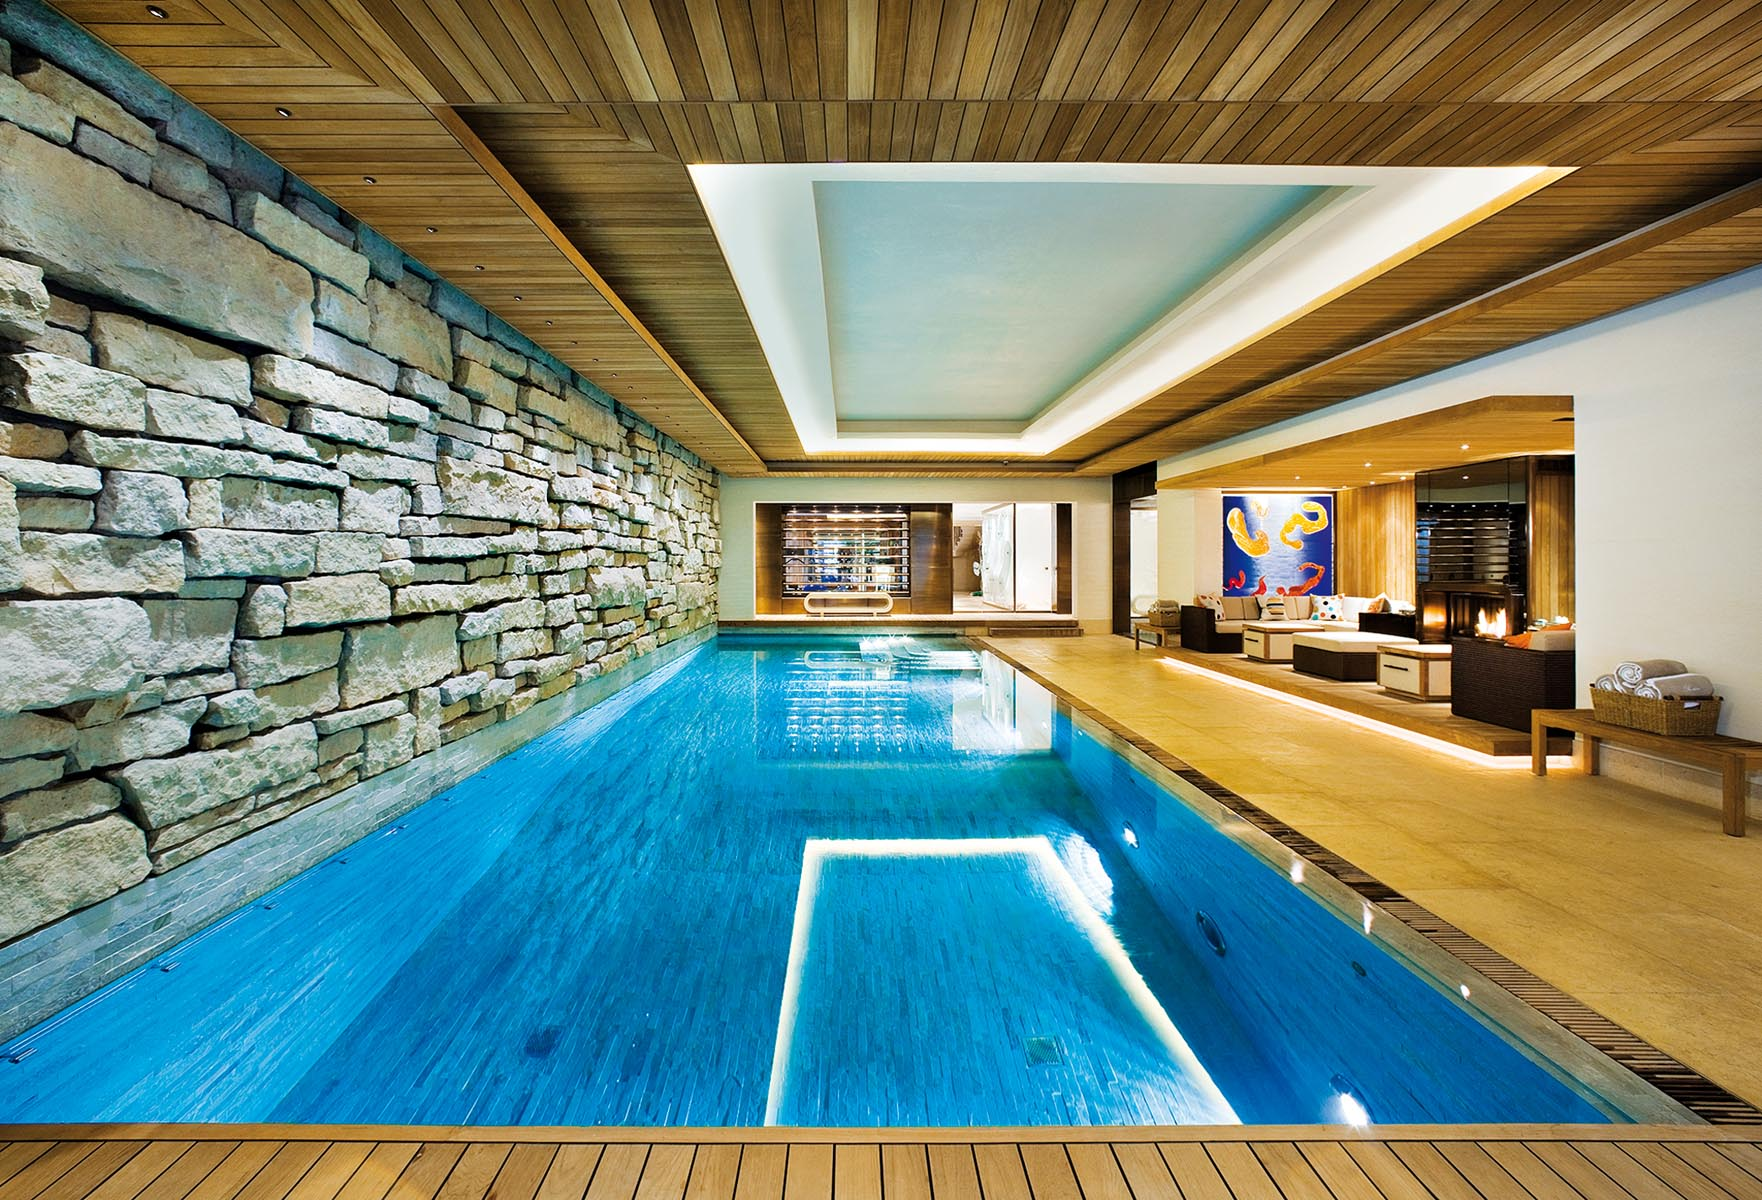 Large swimming pool in private residence with feature stone wall and layered pine ceiling with view to spa area